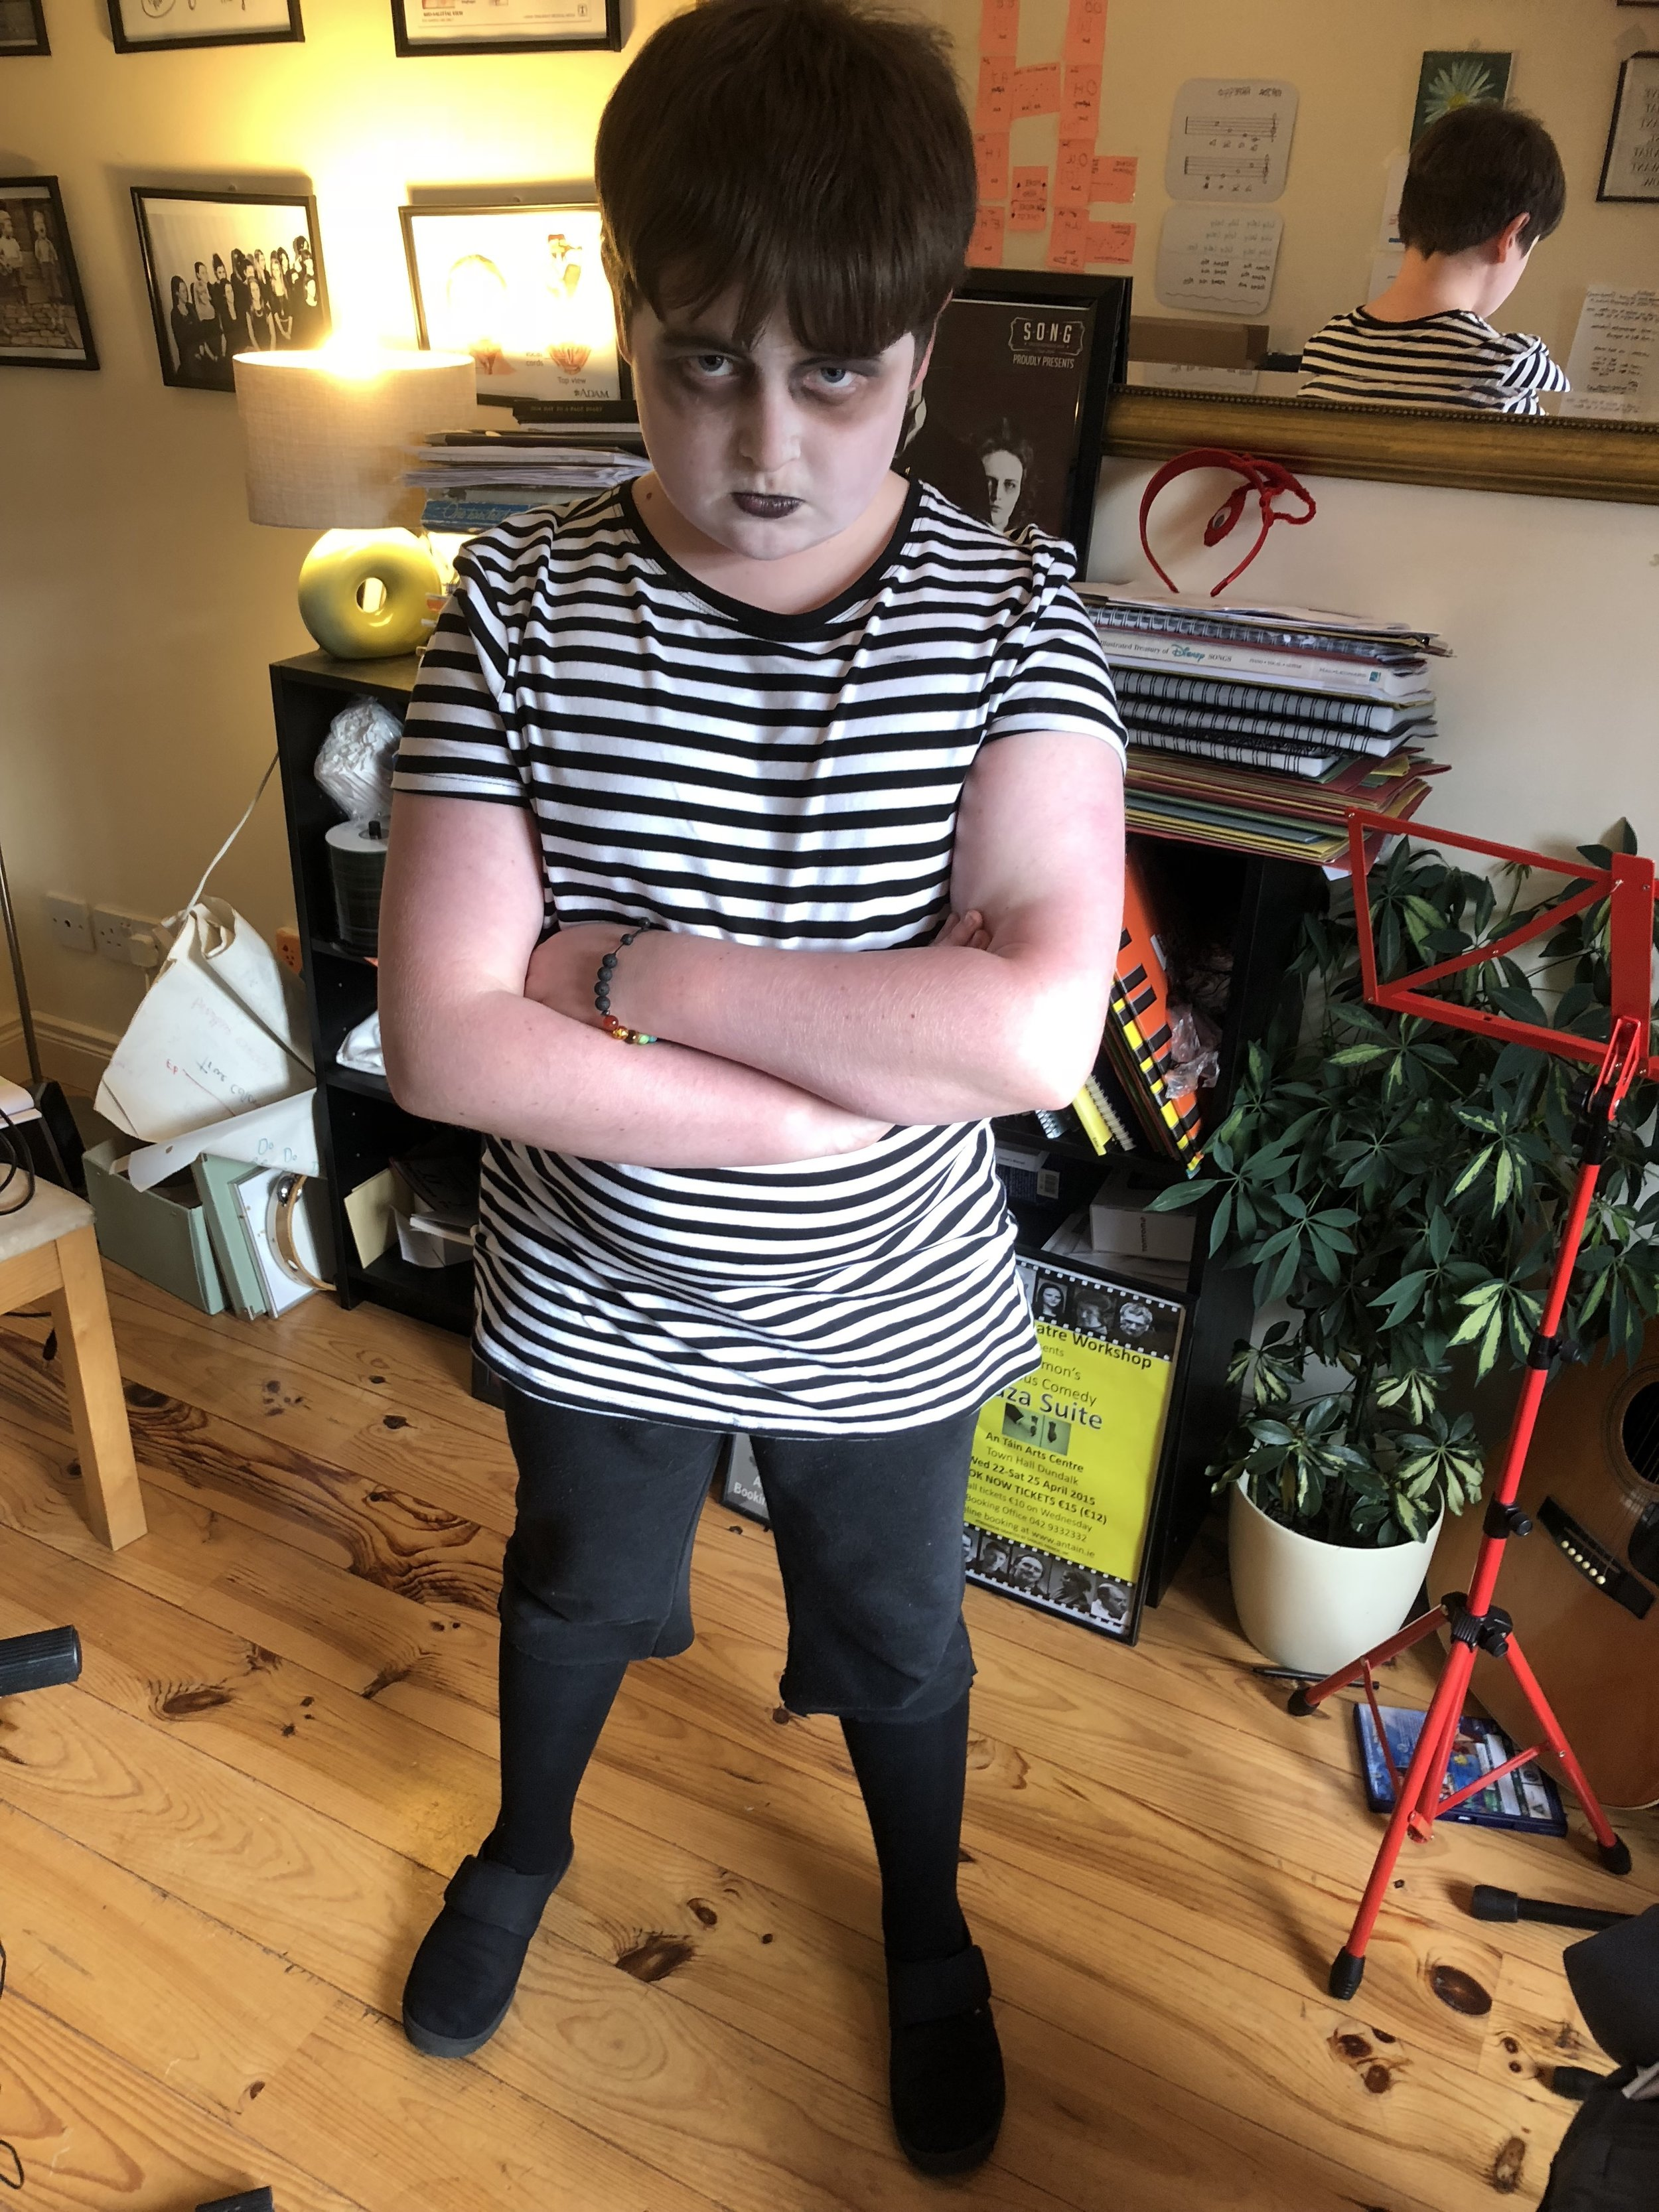 EJ Dunne, who recently starred as Pudsley Addams happy to be at his vocal lesson, swear!!